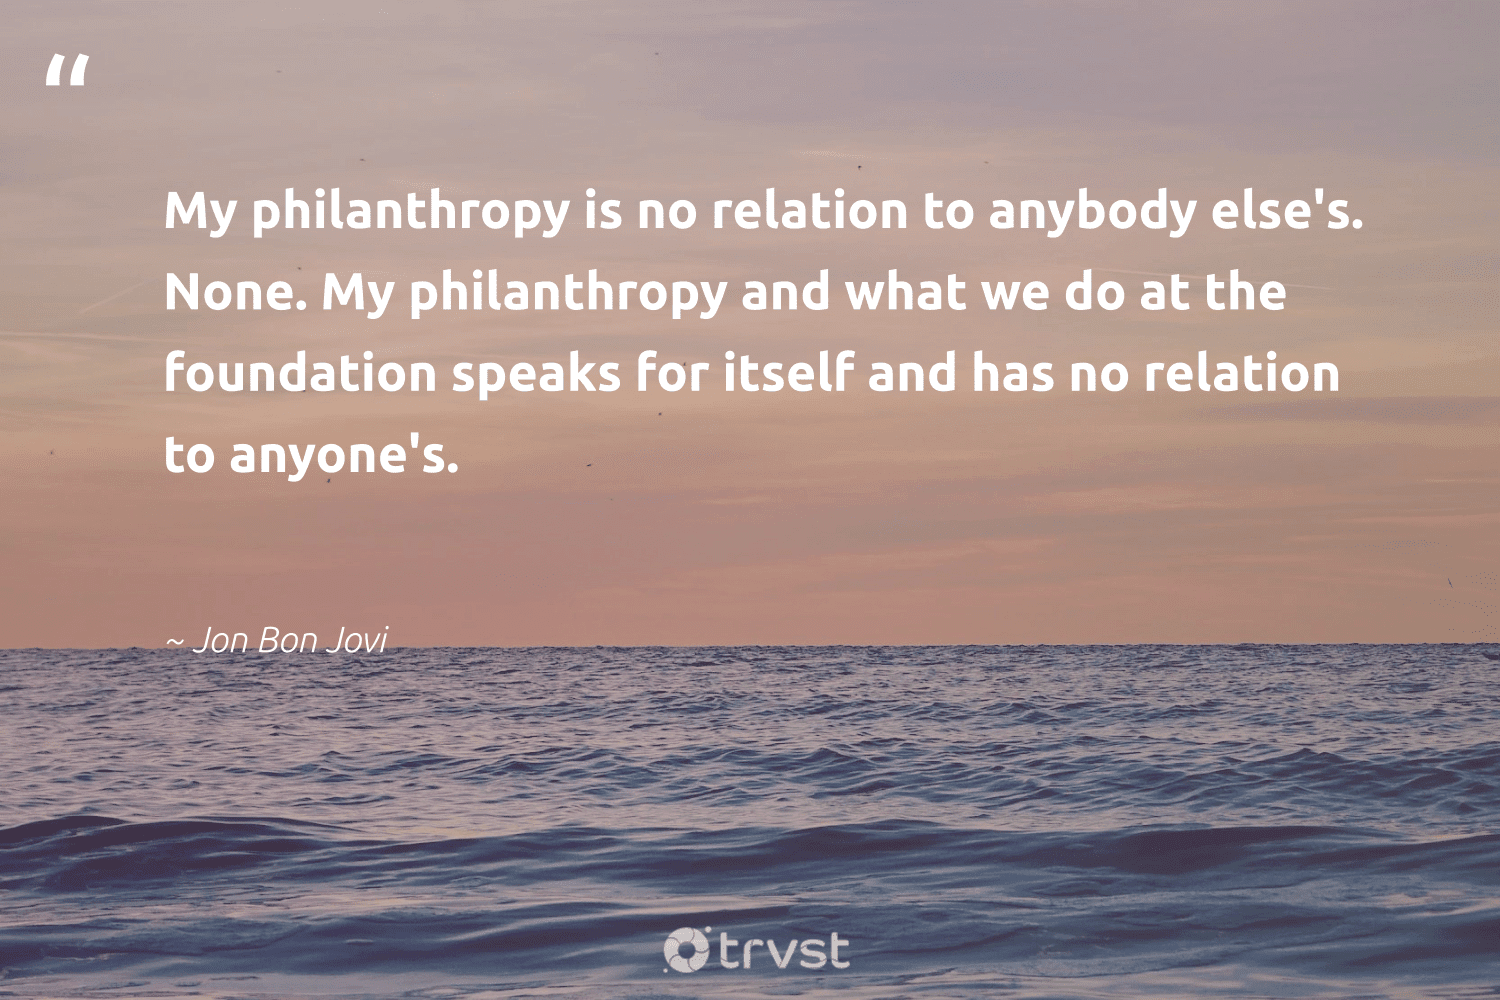 """""""My philanthropy is no relation to anybody else's. None. My philanthropy and what we do at the foundation speaks for itself and has no relation to anyone's.""""  - Jon Bon Jovi #trvst #quotes #foundation #philanthropy #Charity #togetherwecan #bethechange #impact #cause #itscooltobekind #dogood #changetheworld"""